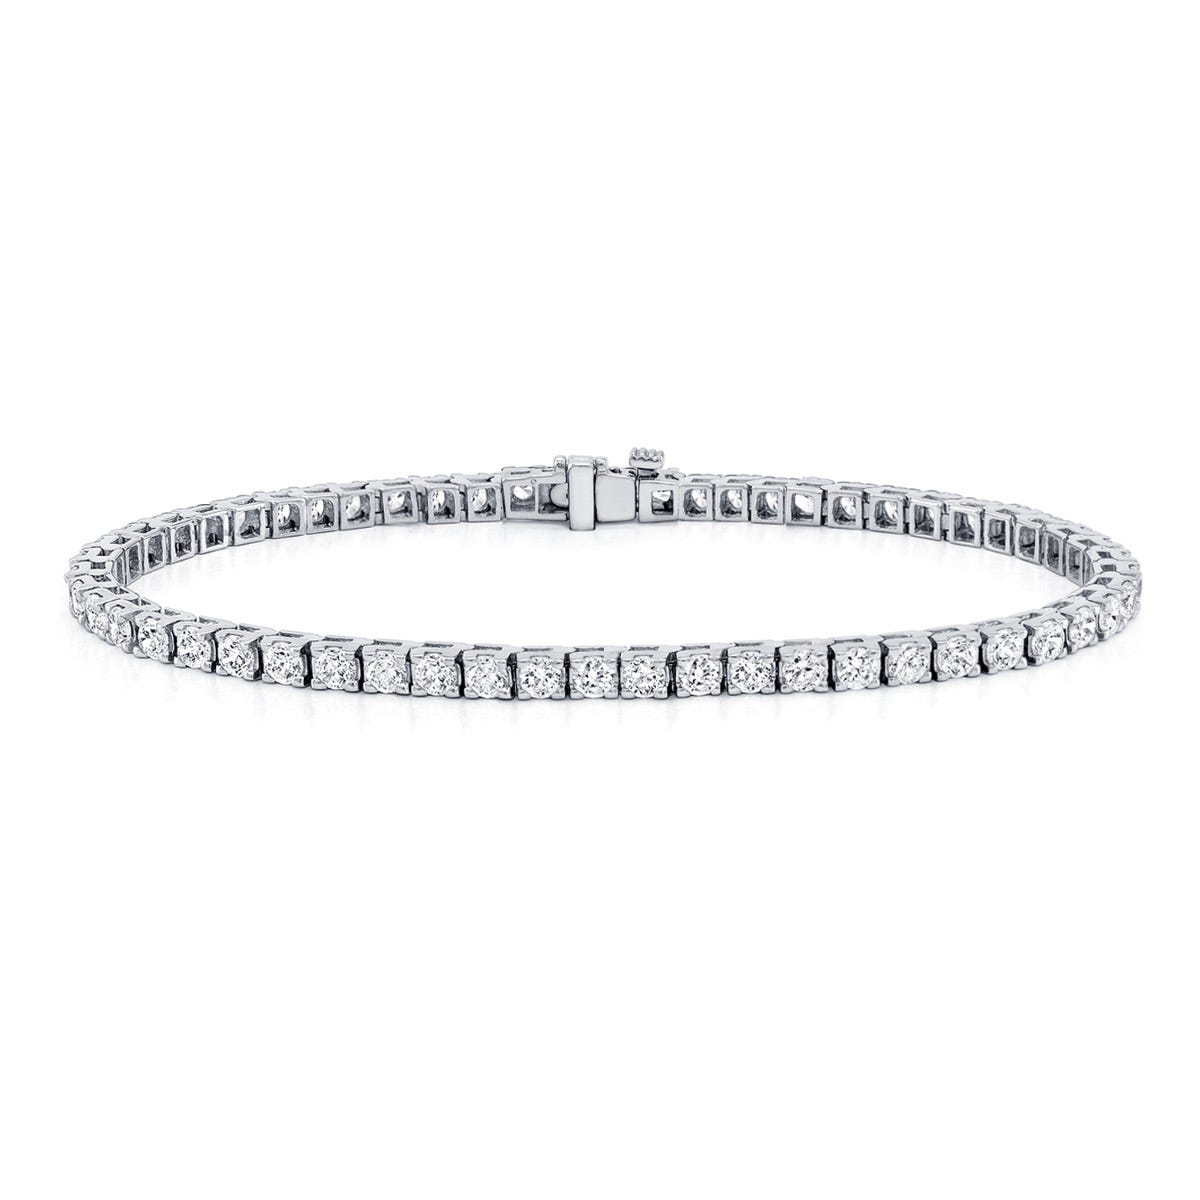 2.50ctw. 4-Prong Square Link Diamond Tennis Bracelet in 14K White Gold (IJ, I1-I2)